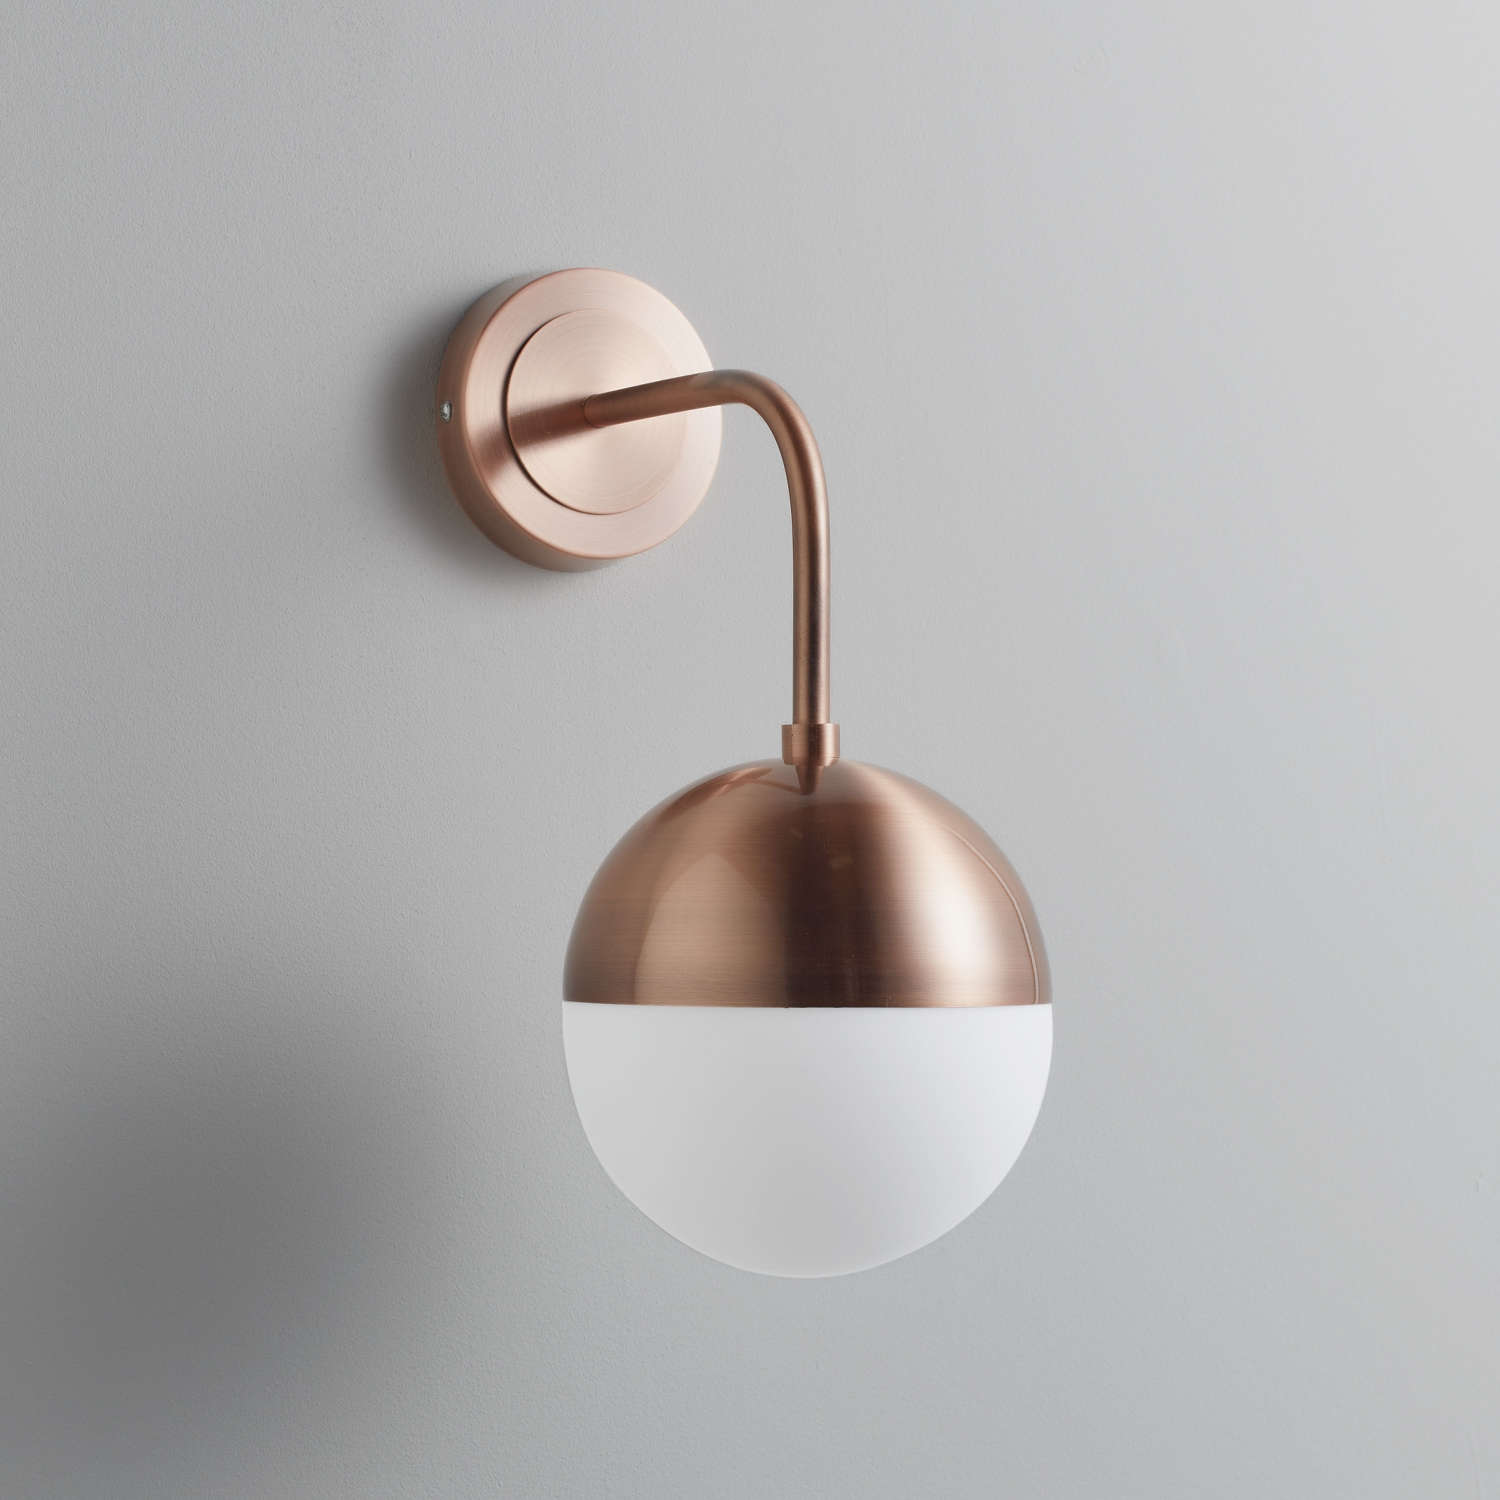 Rose gold wall lamp with white glass globe